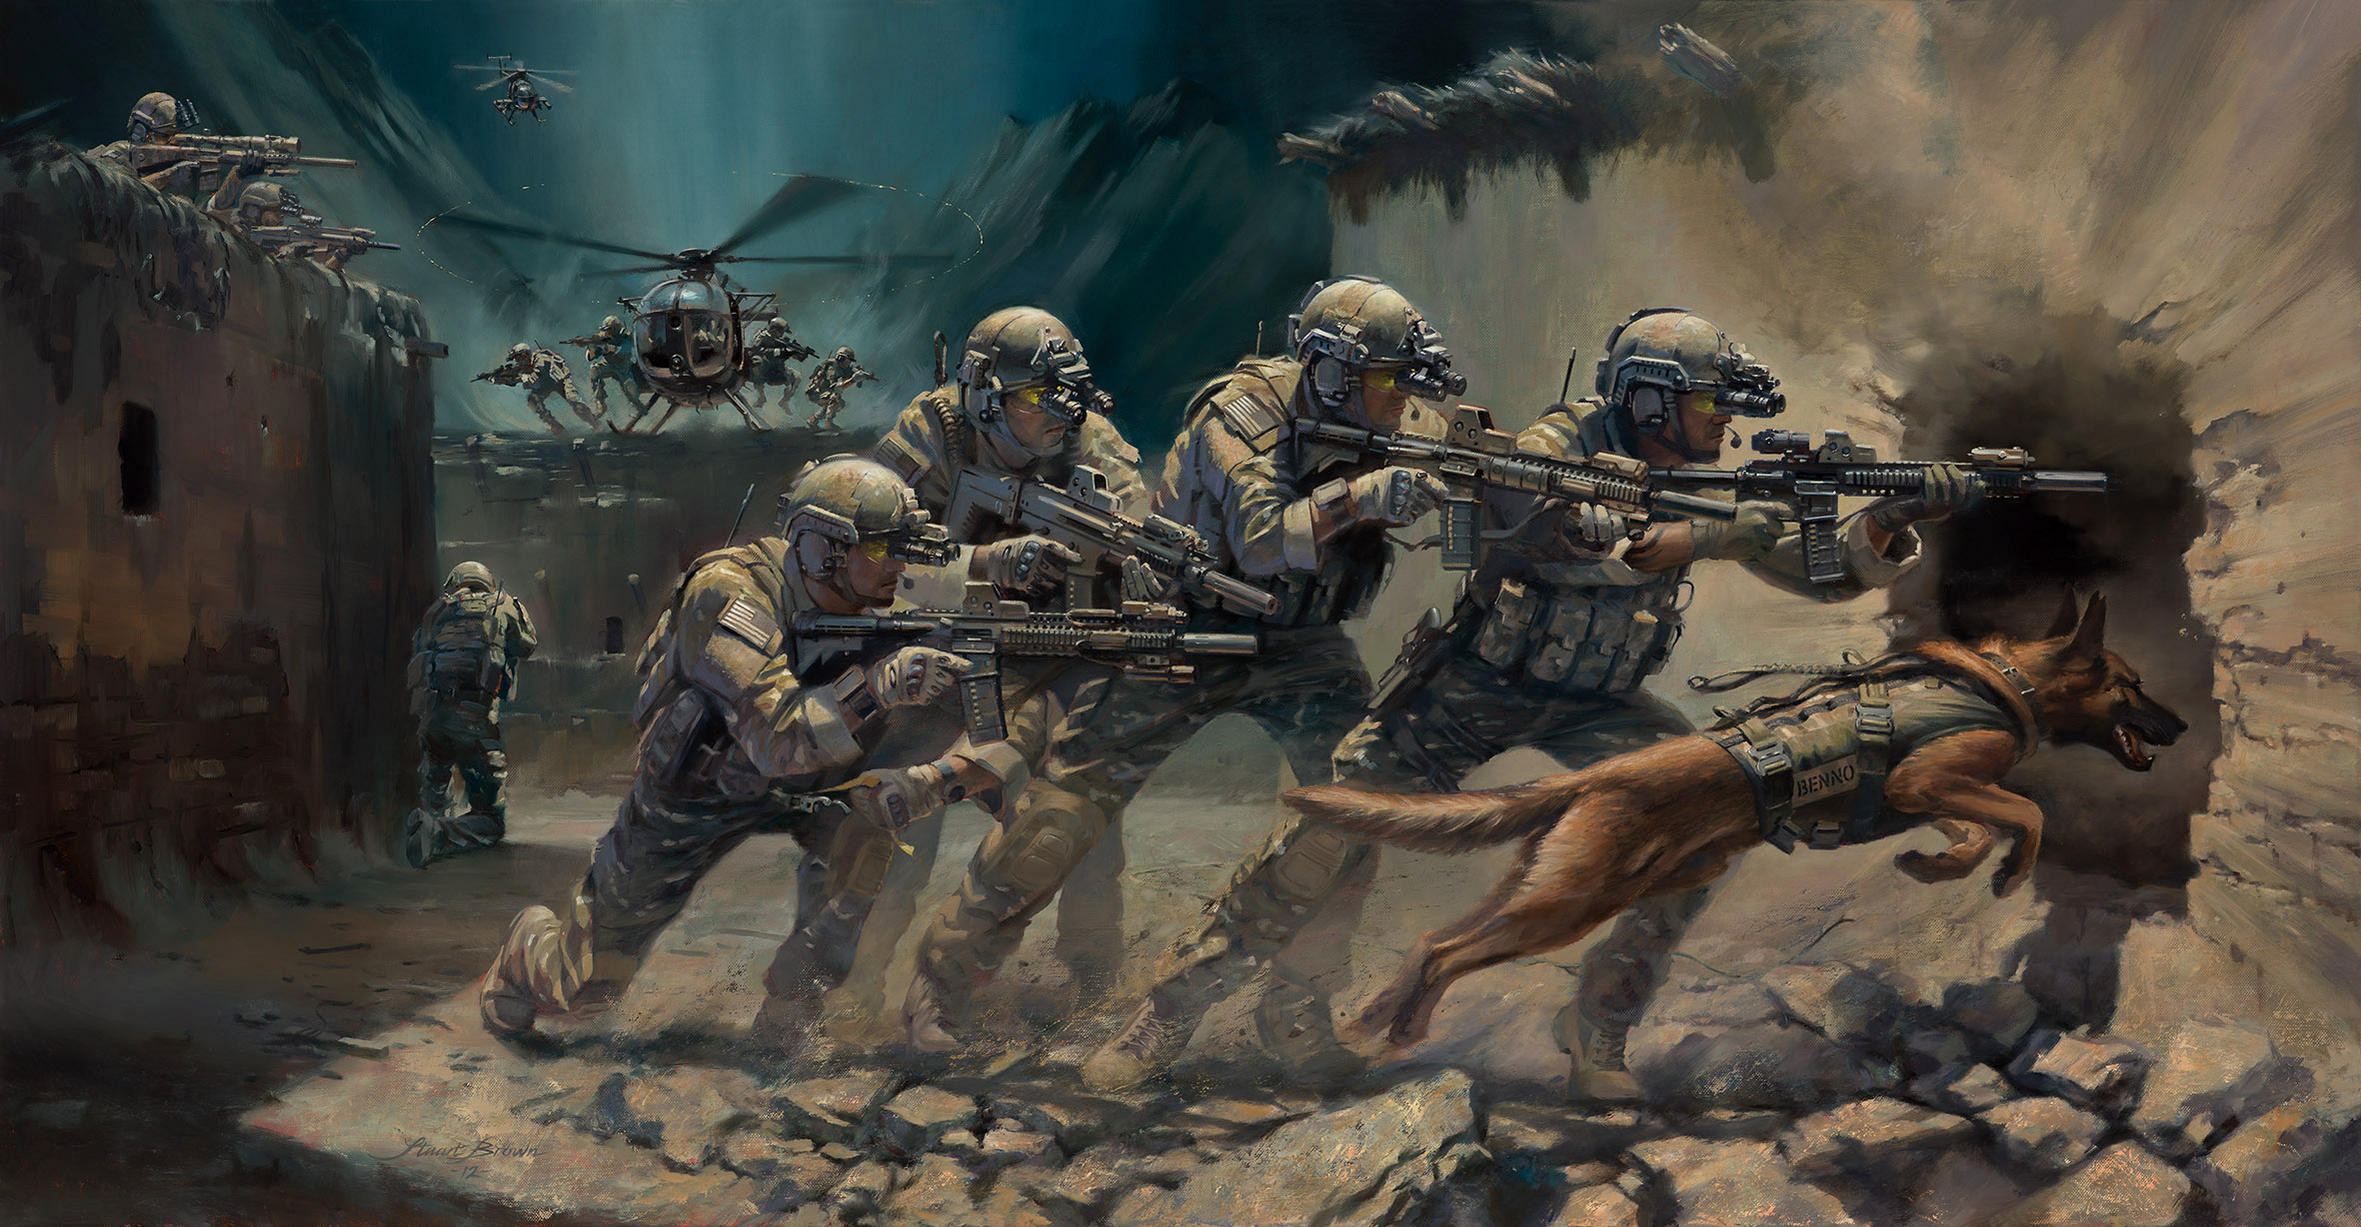 Download wallpaper art, soldiers, special forces, assault rifles, weapons,  equipment,